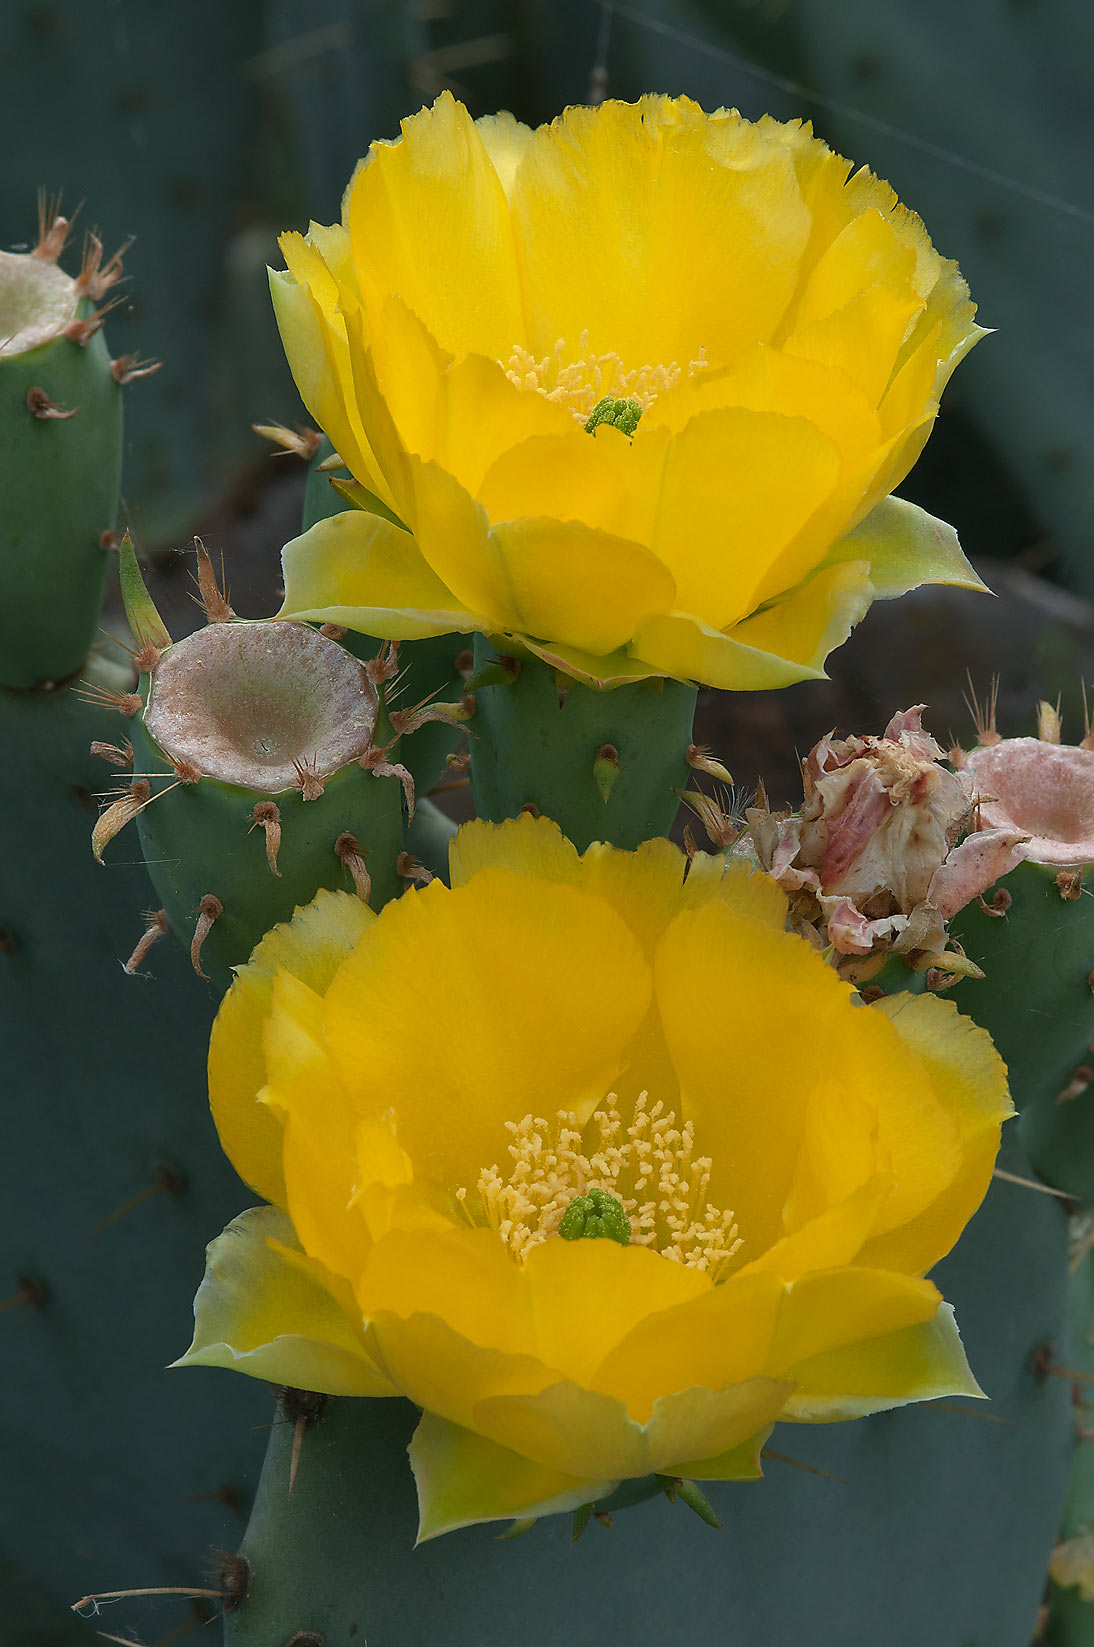 Yellow flowers of prickly pears (Opuntia) in...Unit of Lake Somerville State Park